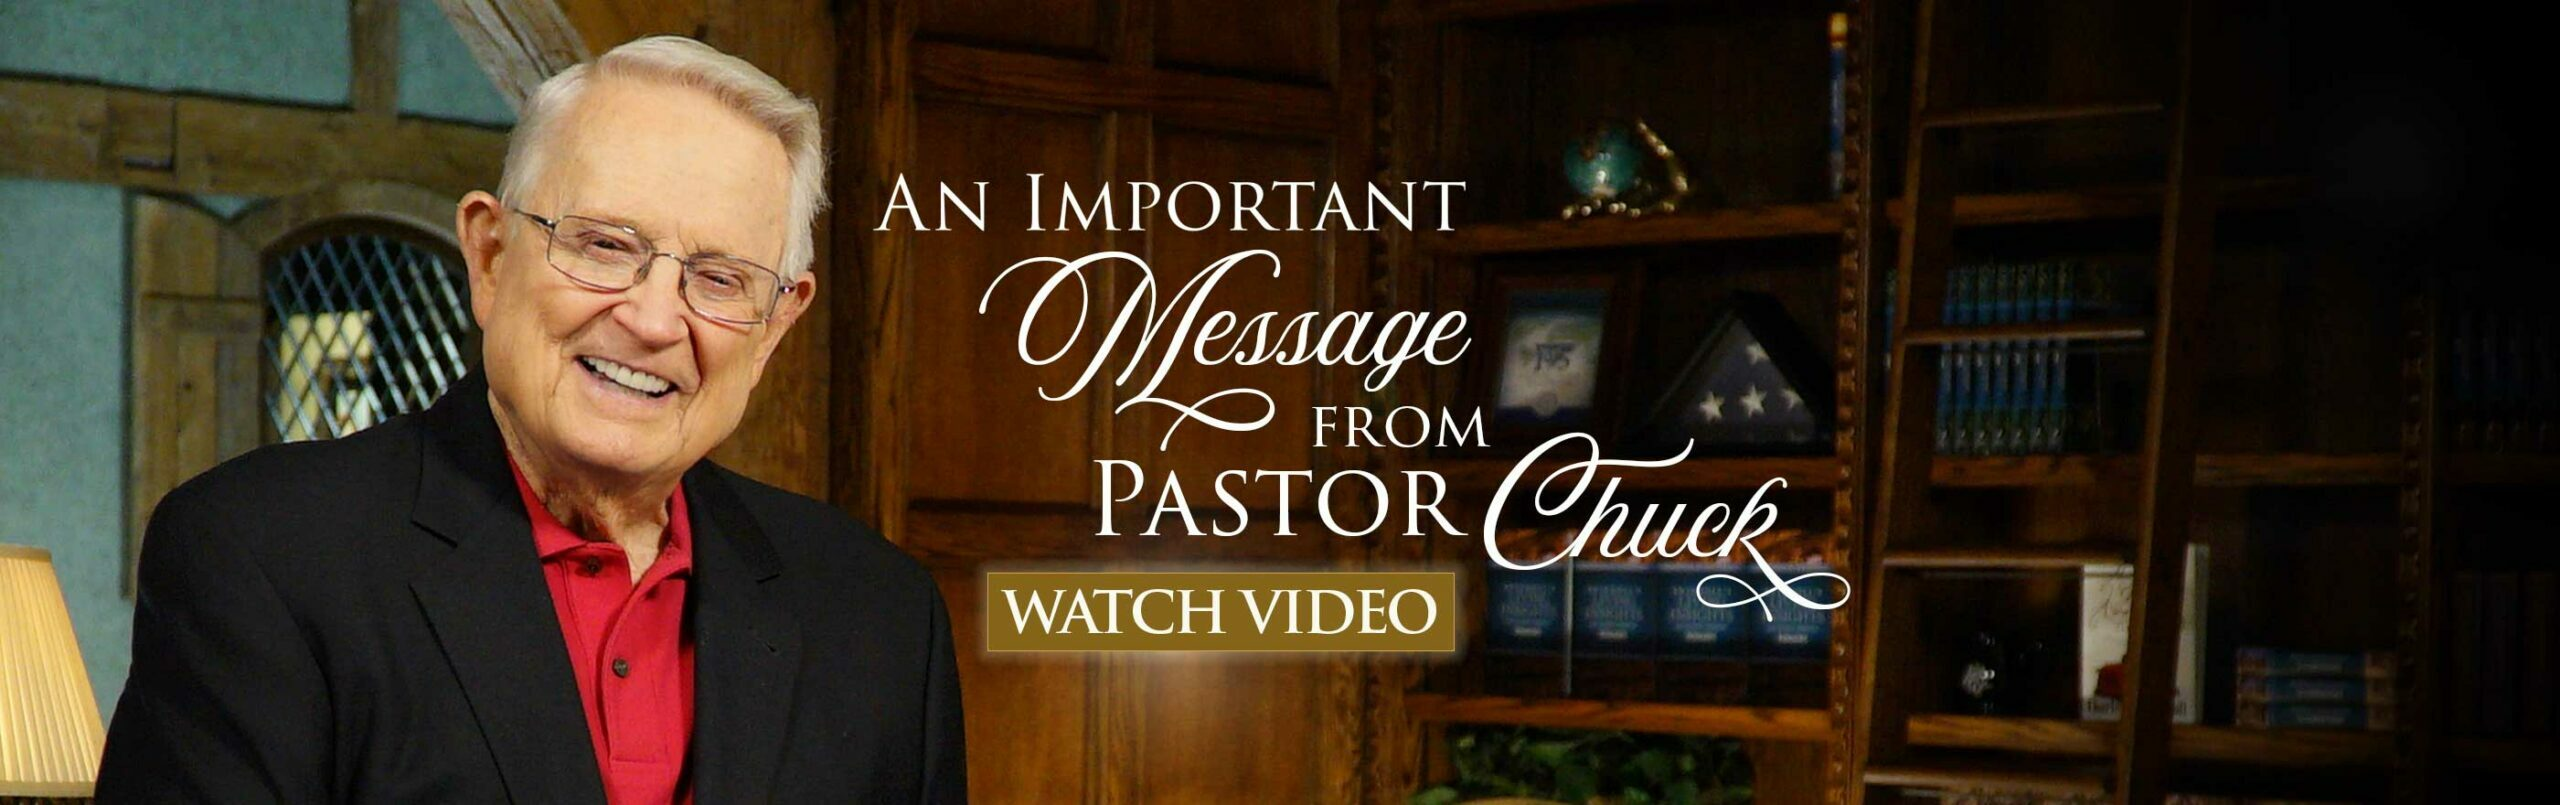 An Important Message from Pastor Chuck --- Watch Video